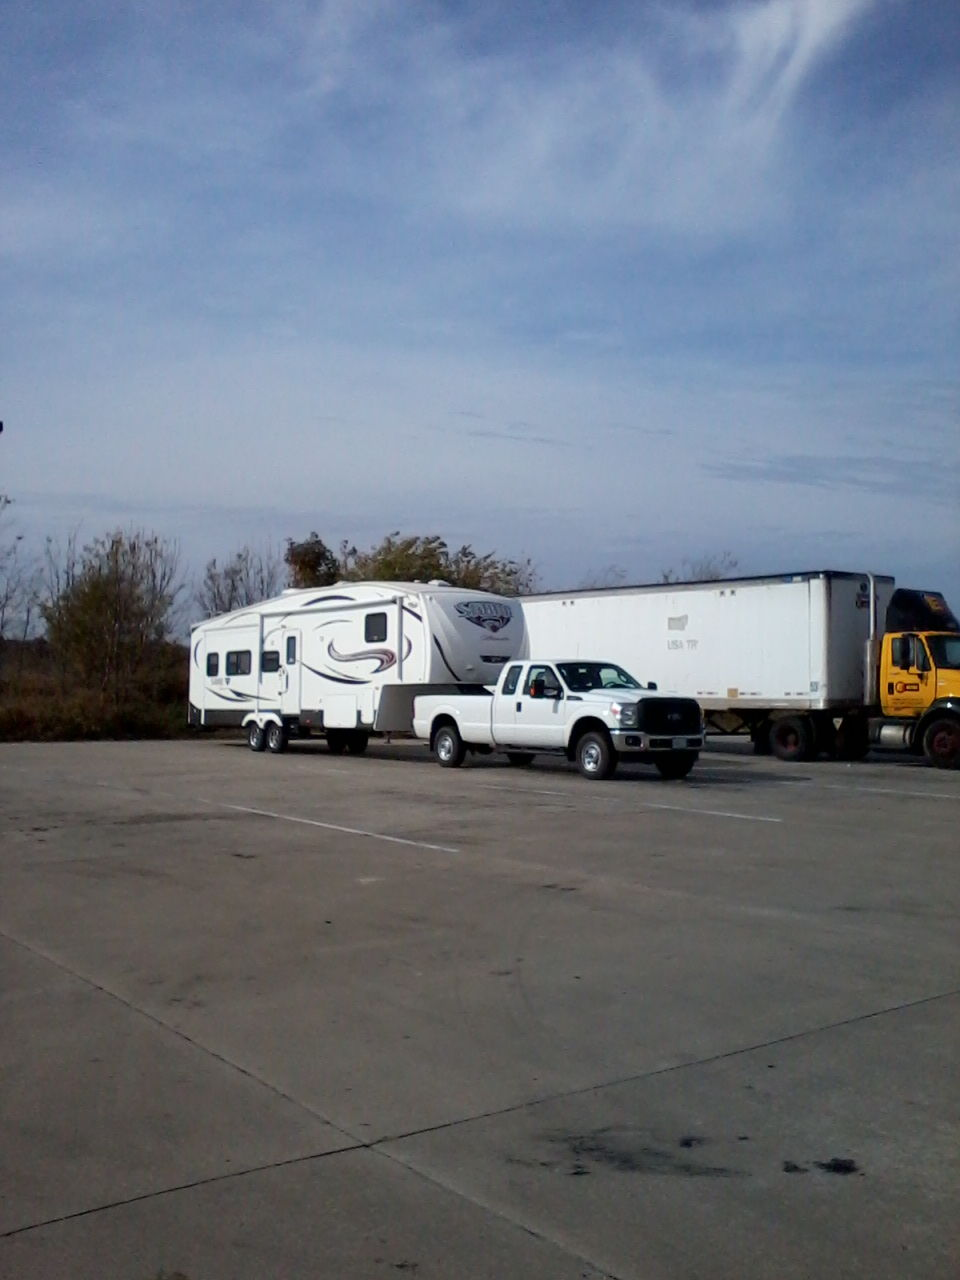 6 2 gas towing new 5th wheel report